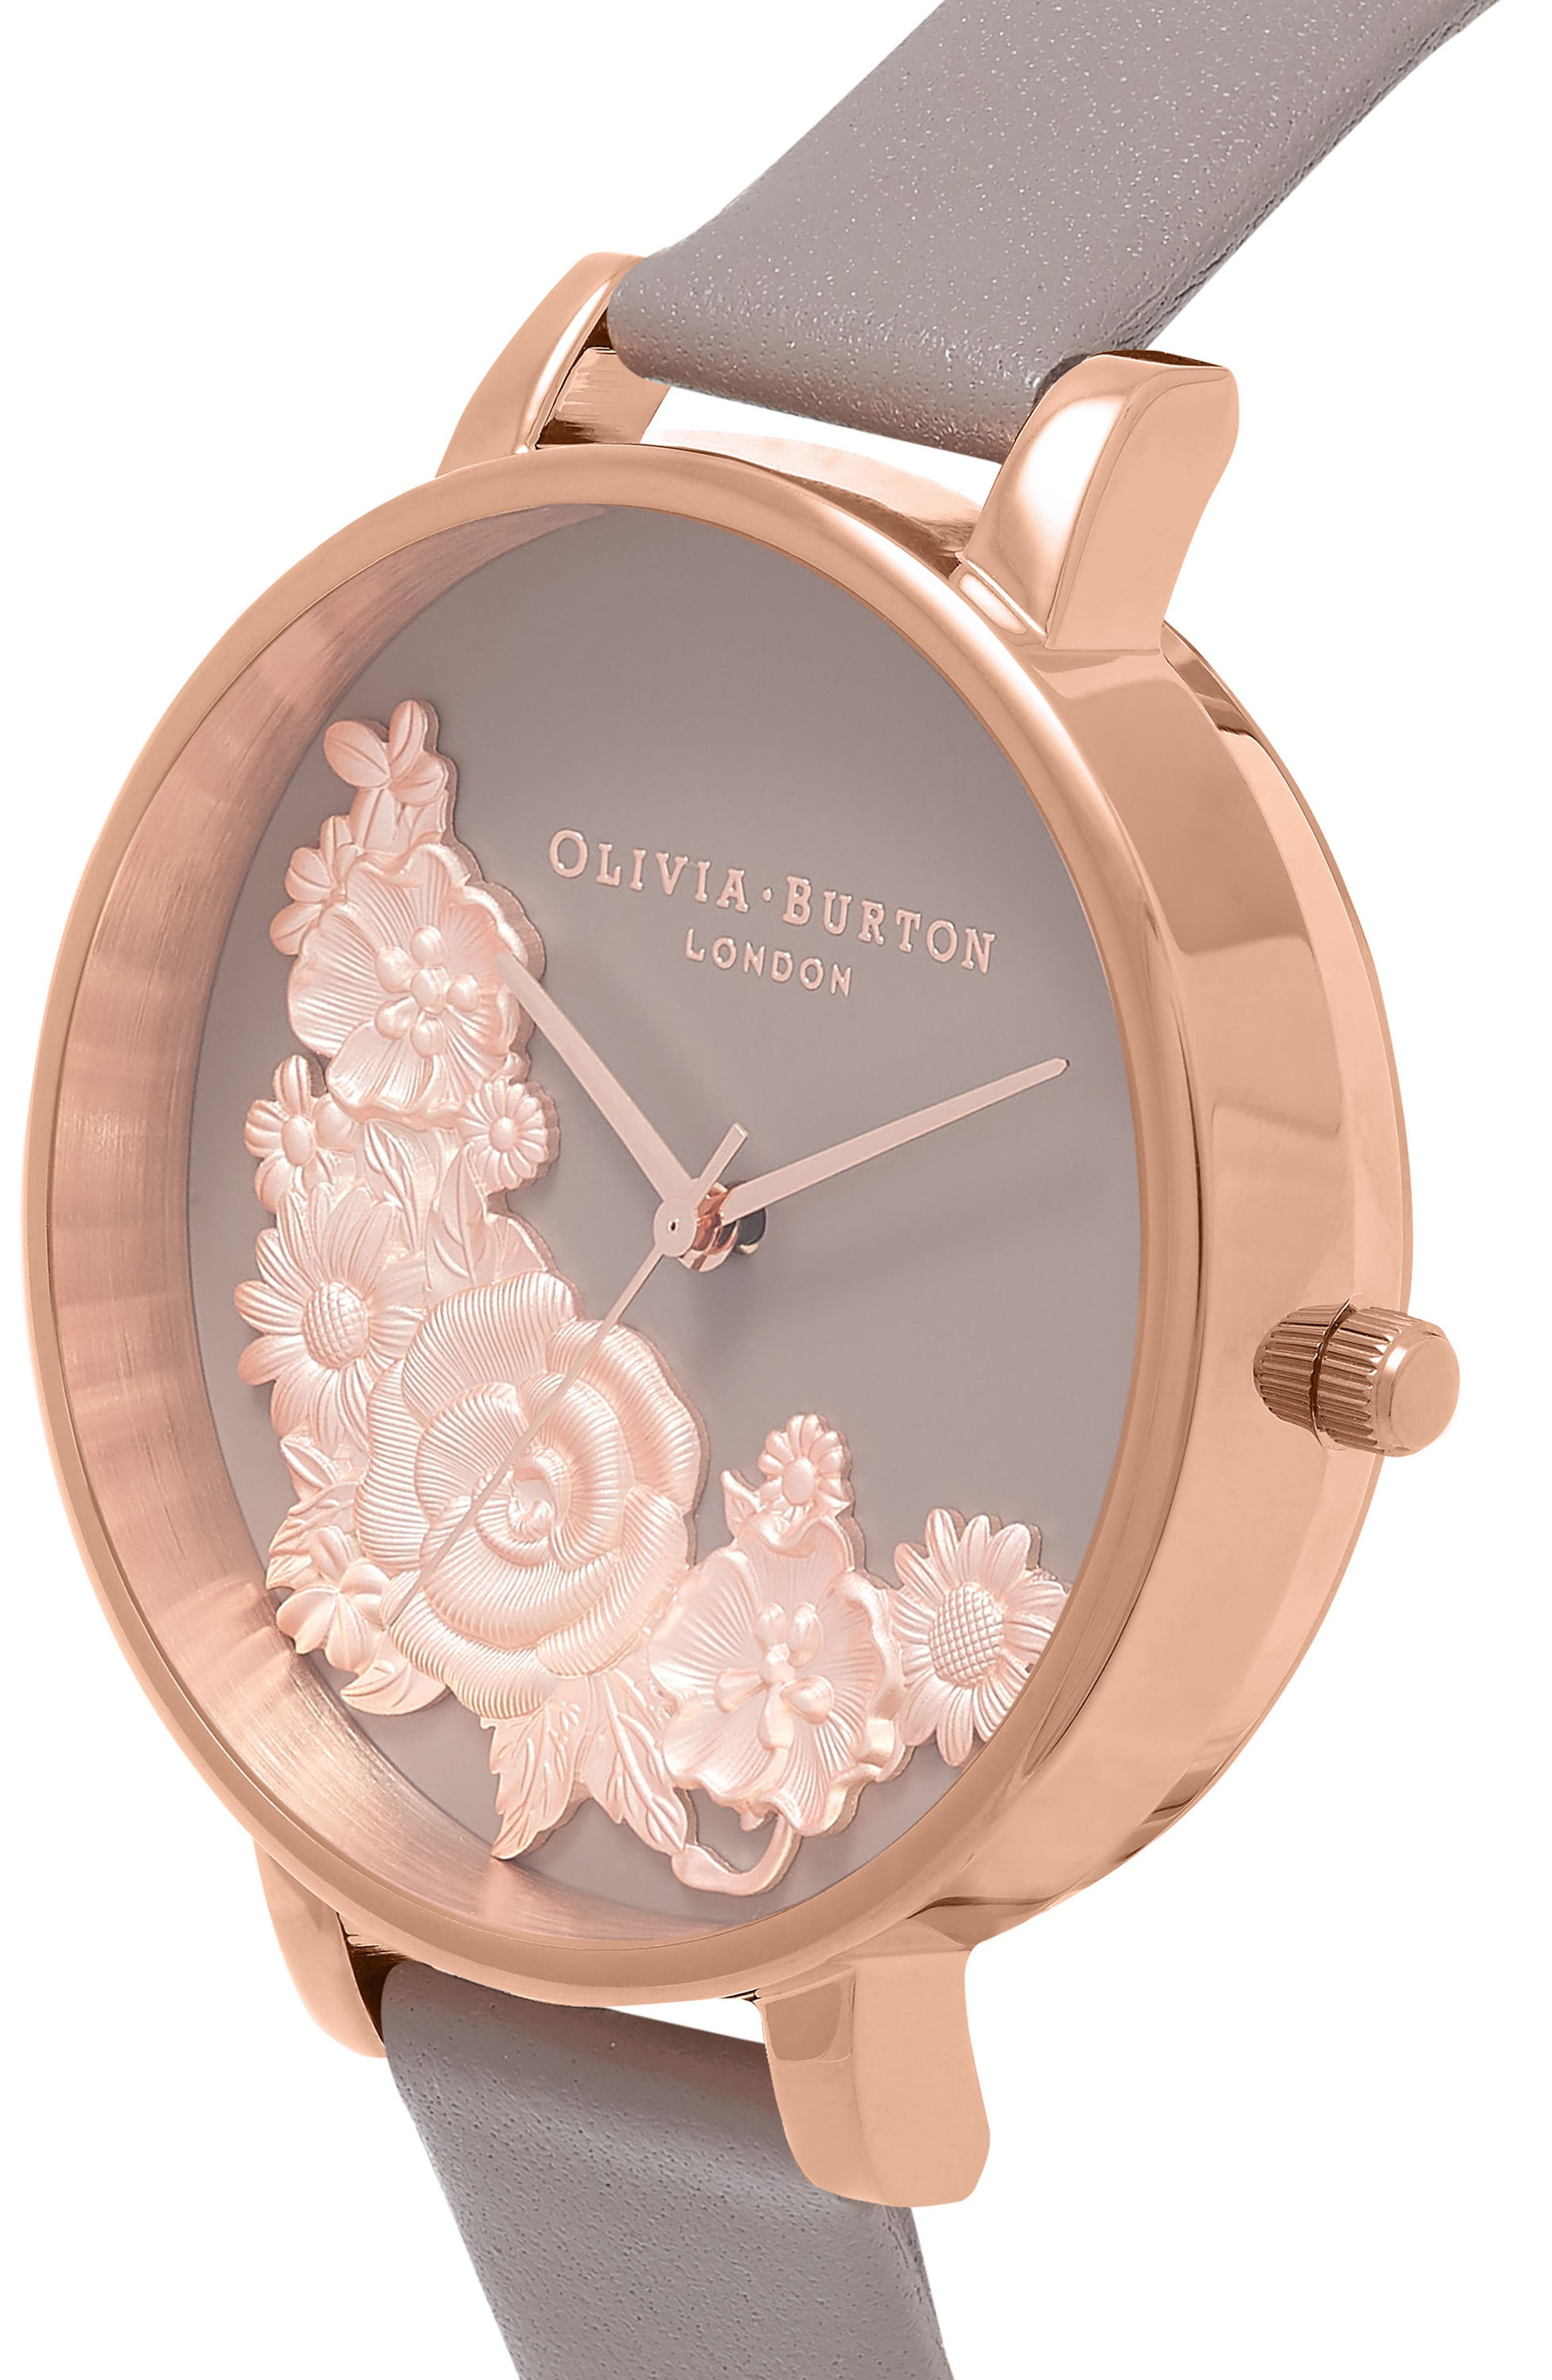 Floral Bouquet Leather Strap Watch, 38mm,                             Alternate thumbnail 5, color,                             LONDON GREY/ GREY/ ROSE GOLD